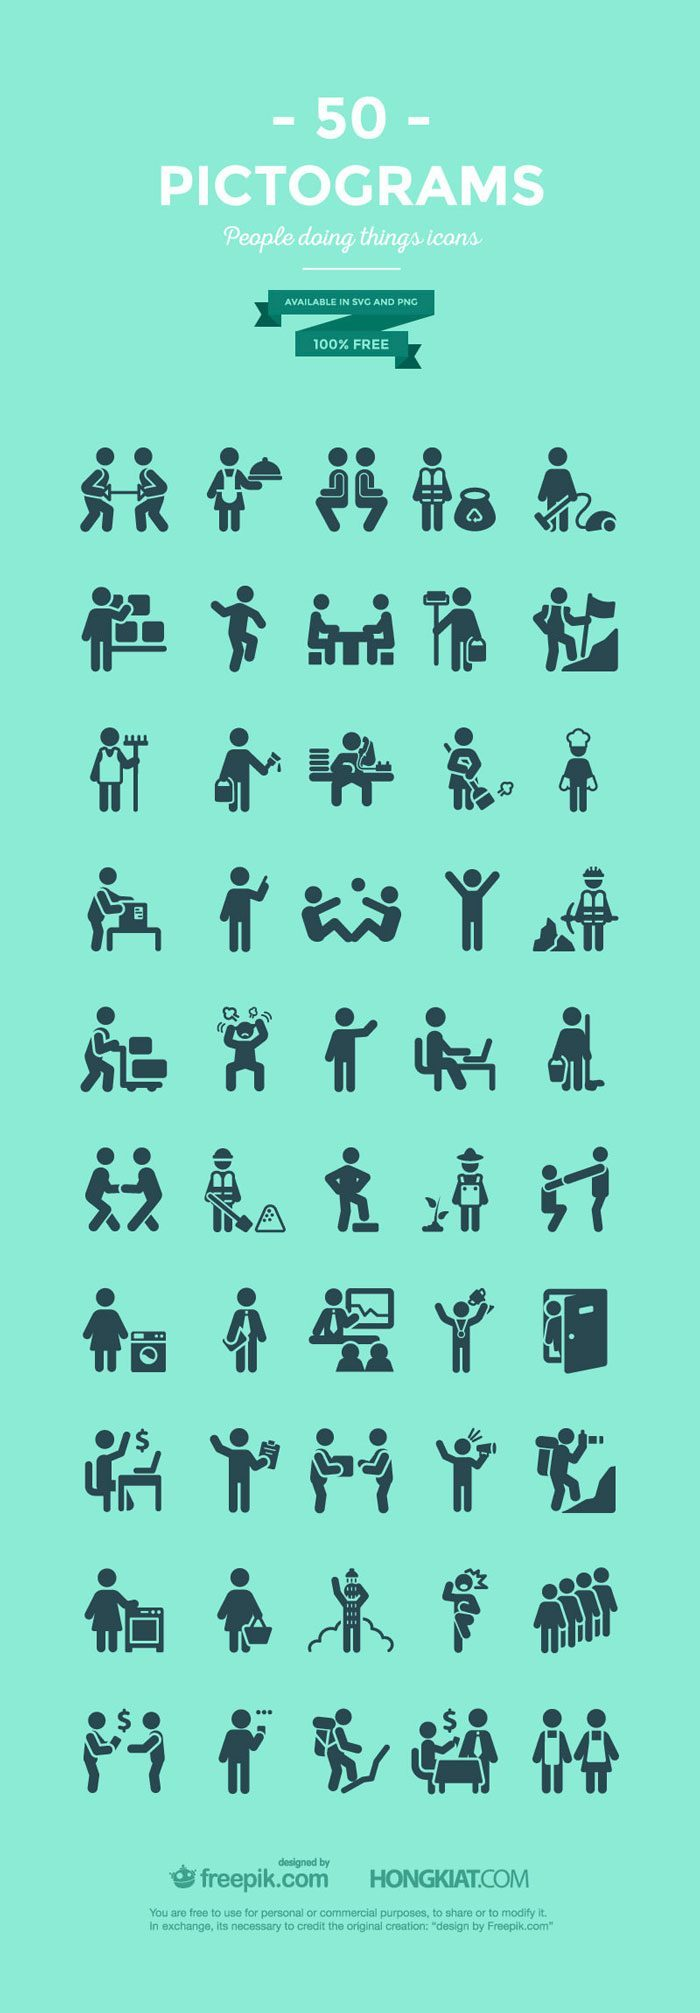 Kreation_0615_pictograms_preview_alle